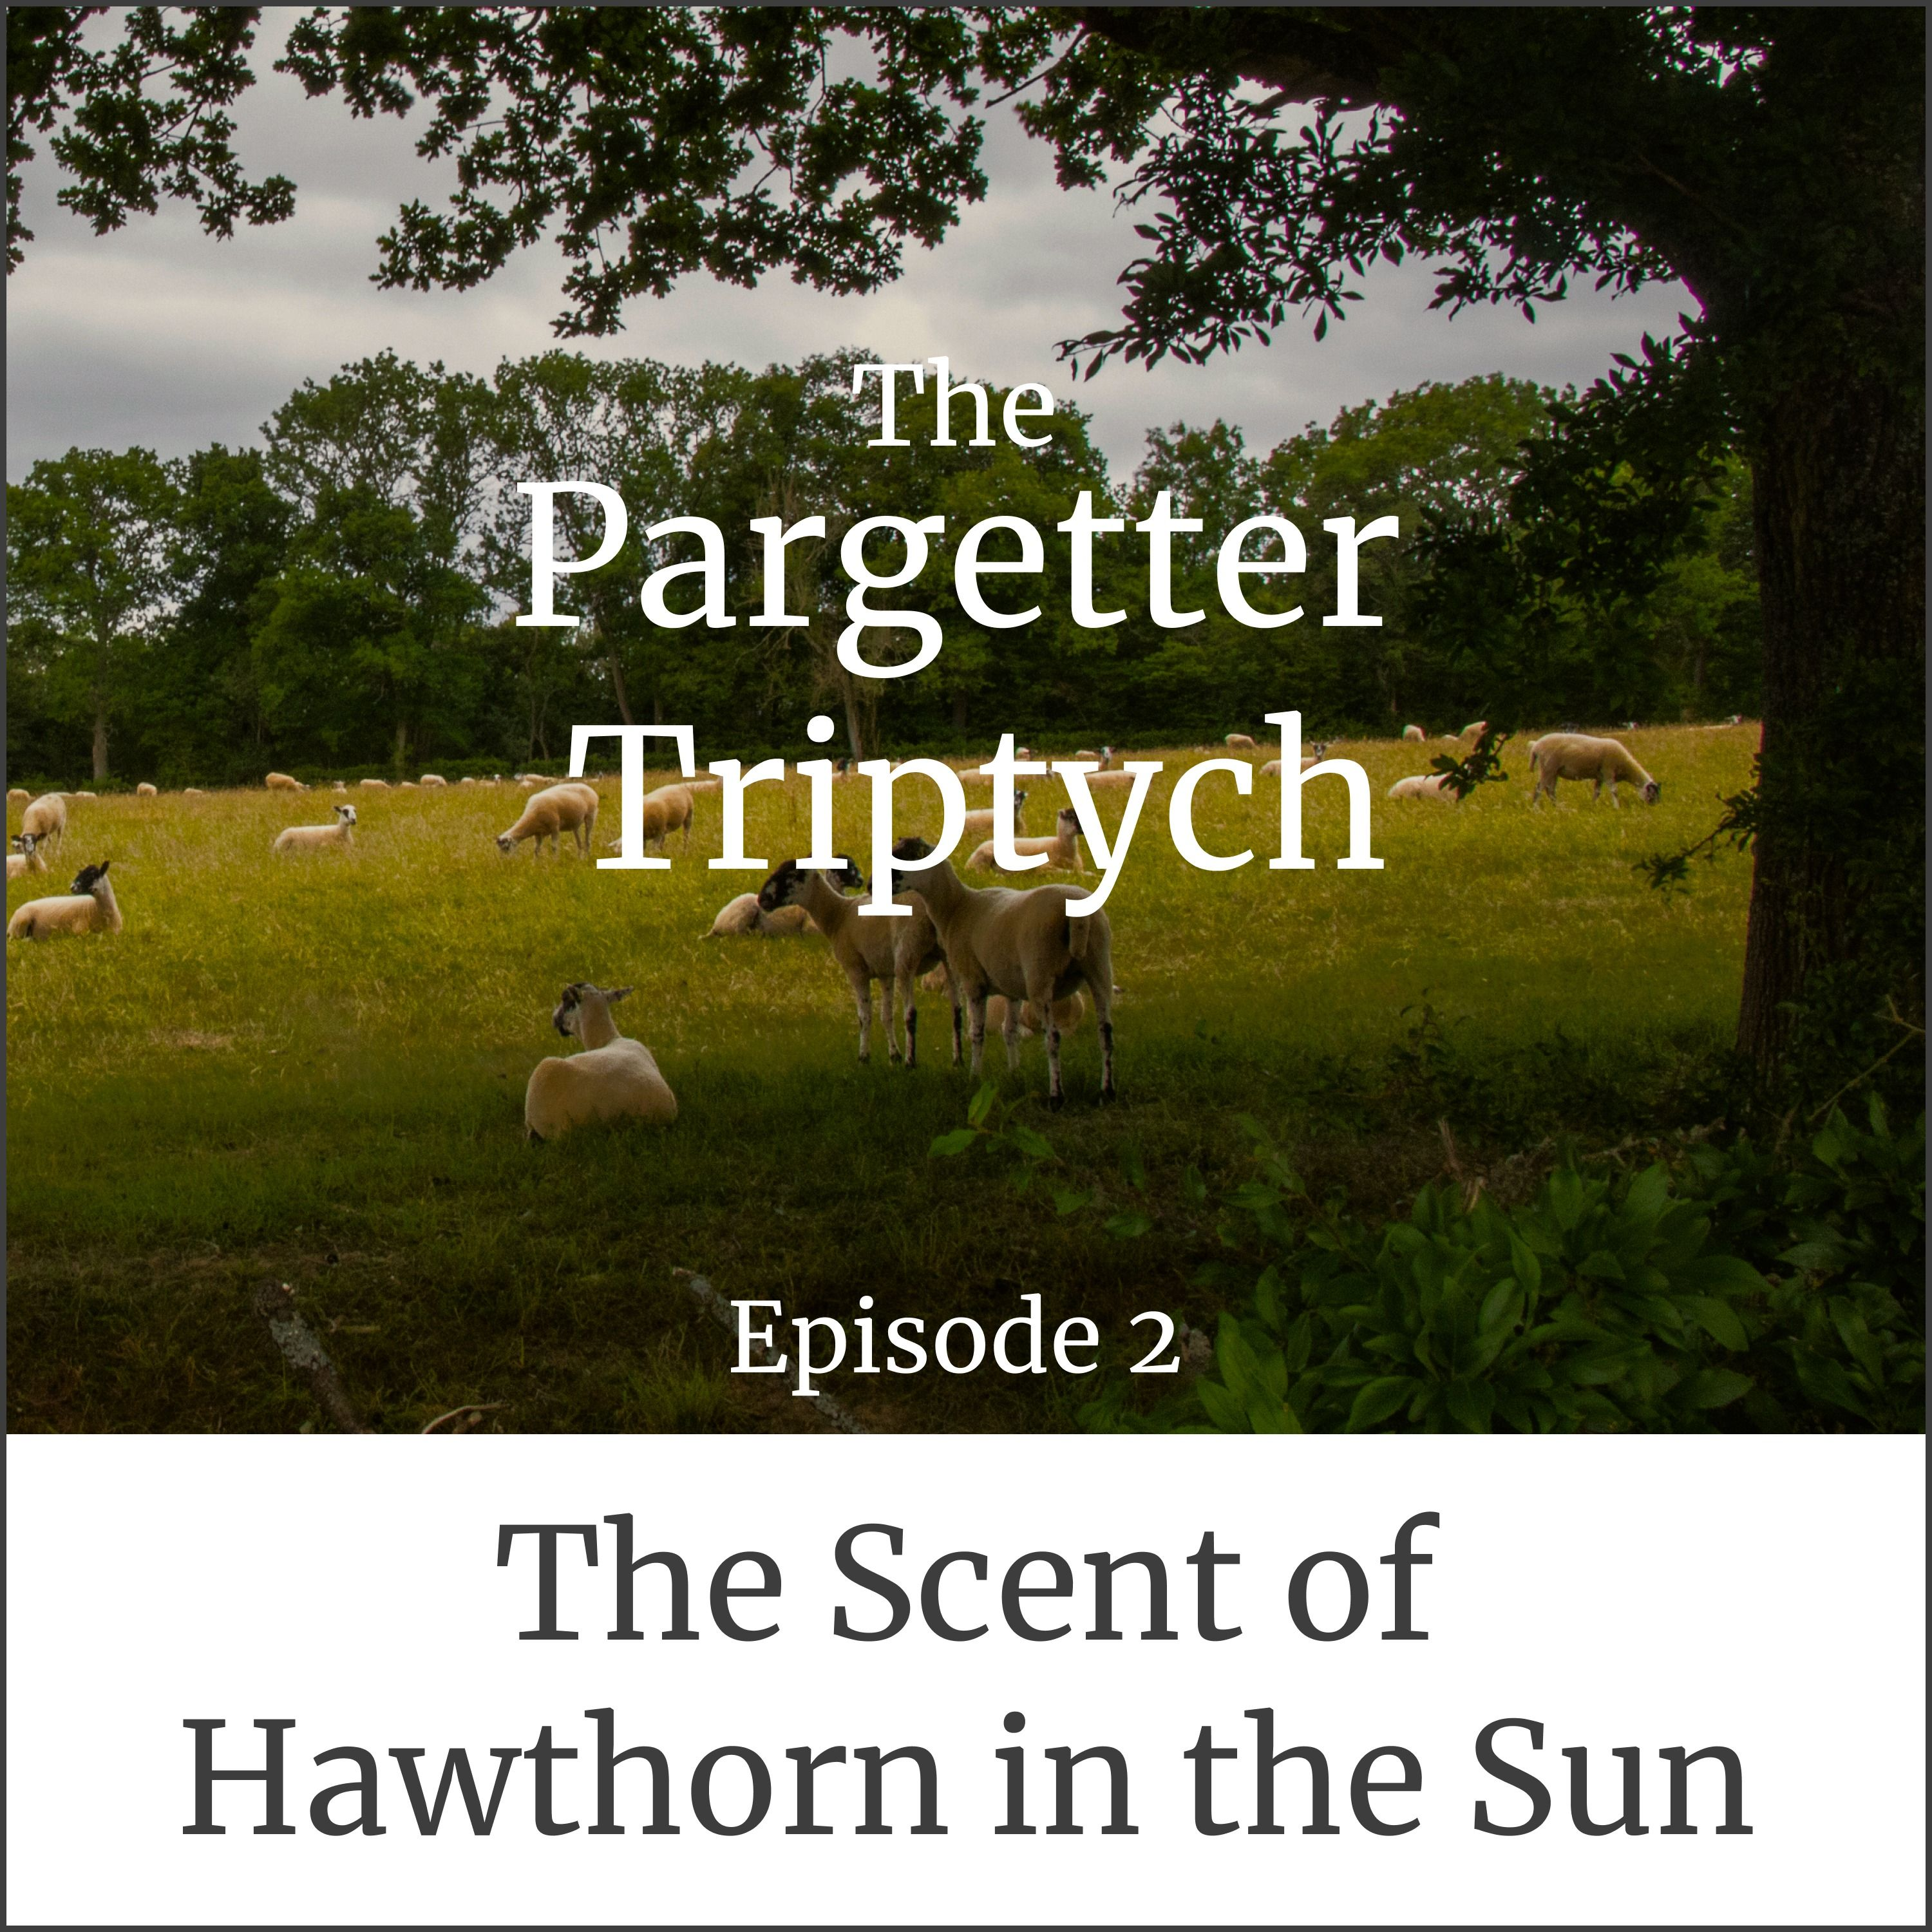 Episode 2: The Scent of Hawthorn in the Sun